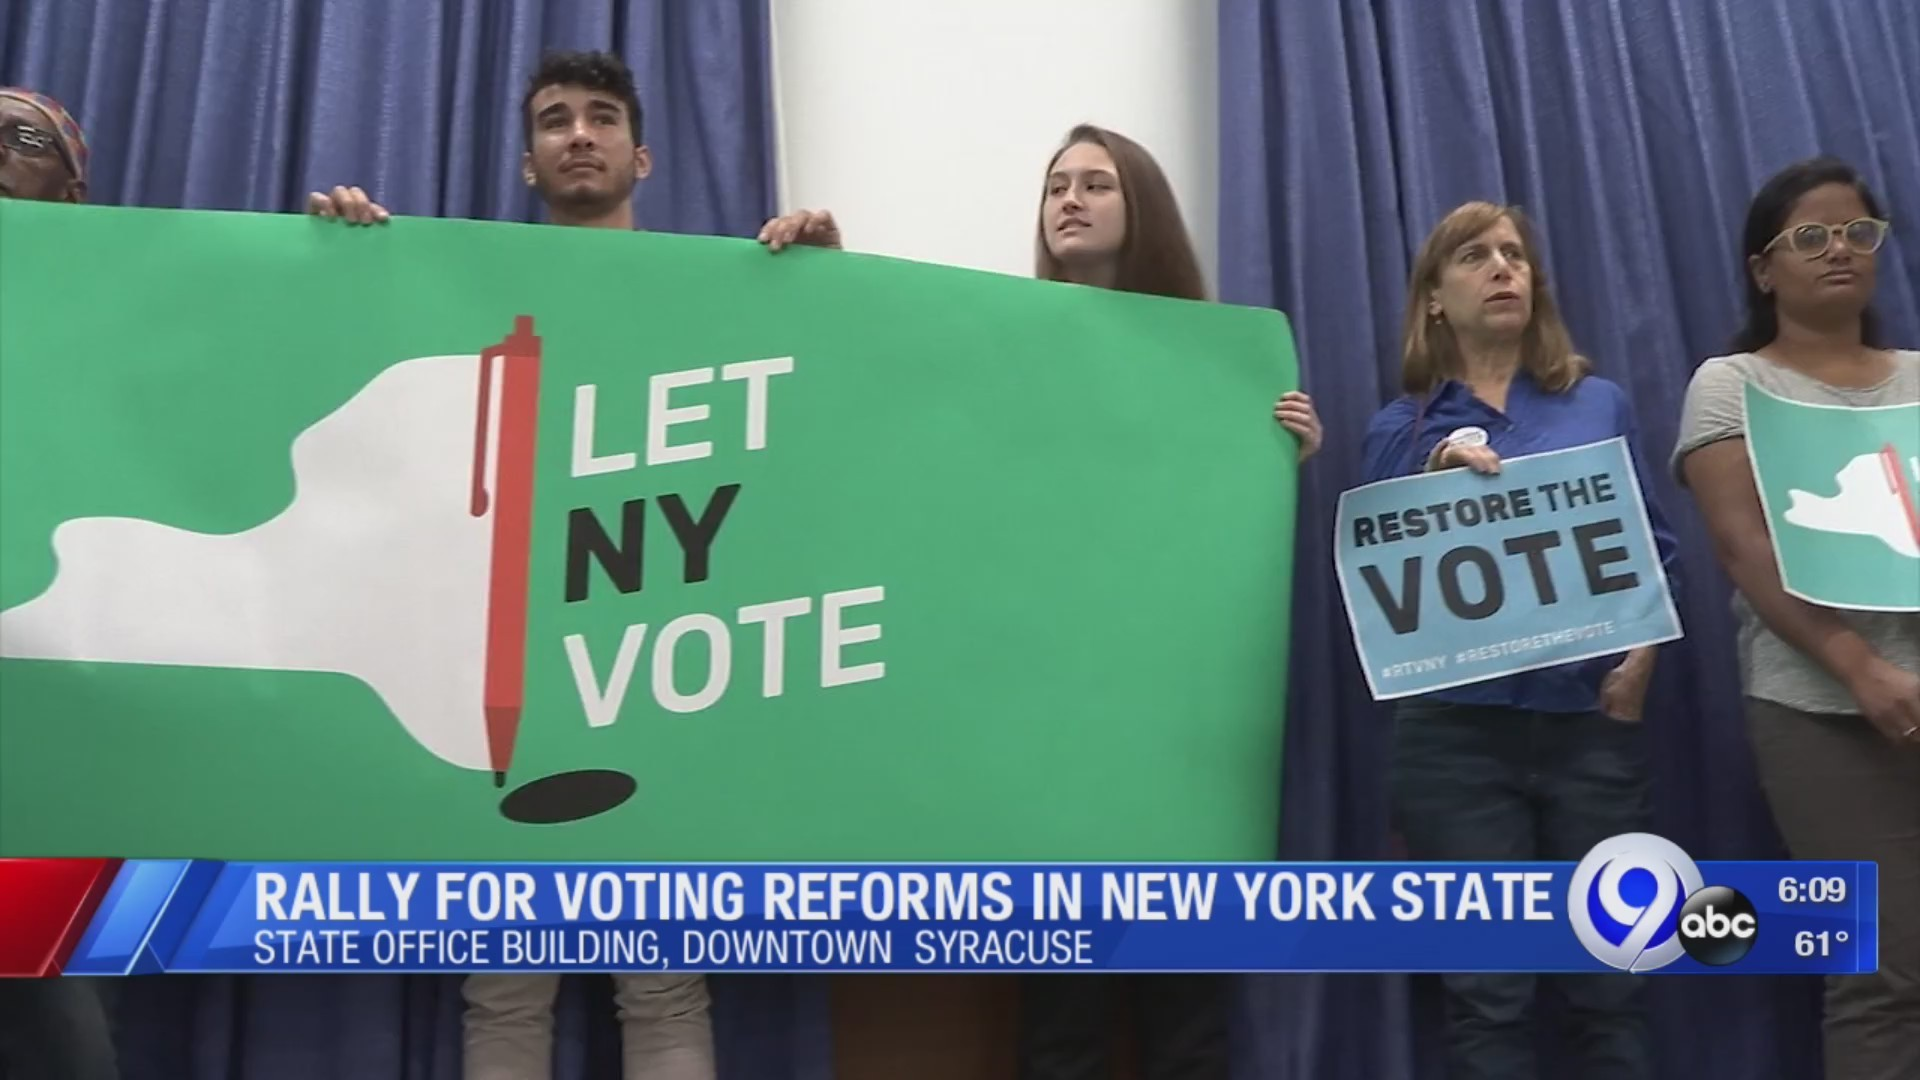 Rally_for_voting_reforms_in_New_York_Sta_0_20190610224329